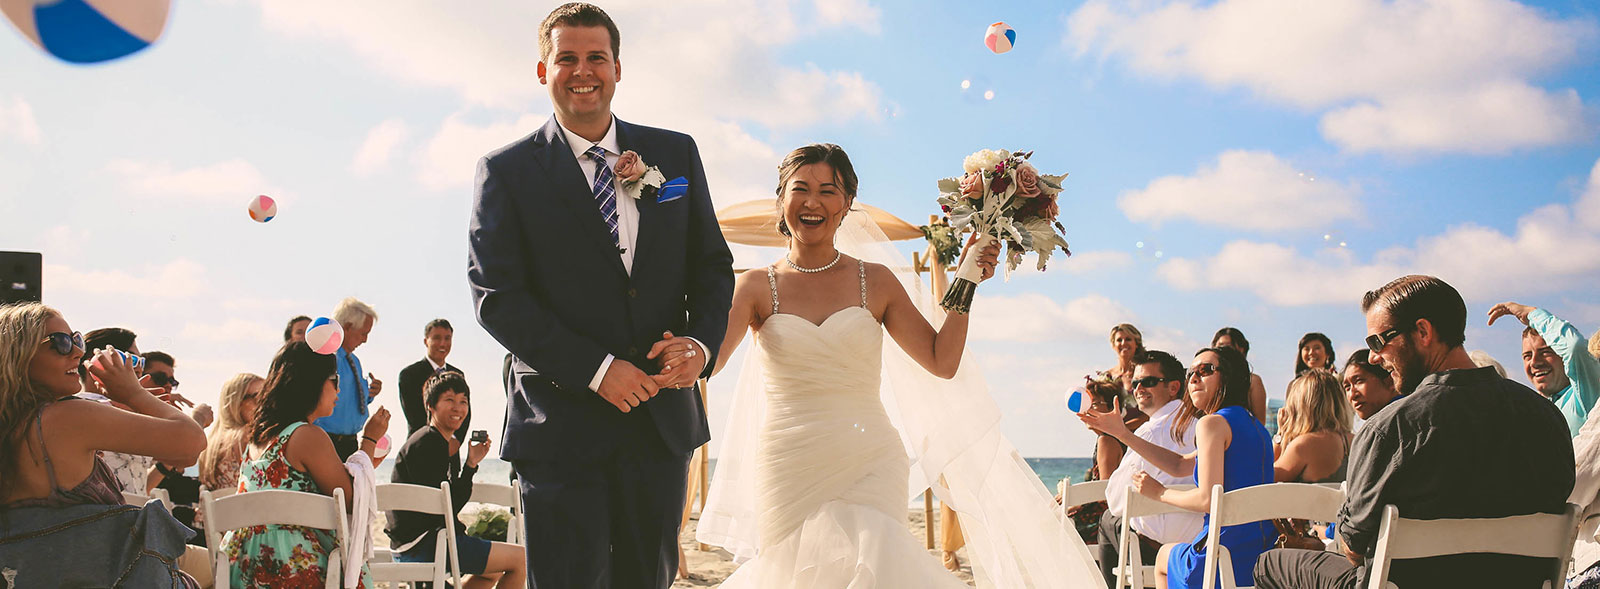 A couple walking down the aisle after their beach wedding ceremony at La Jolla Shores Hotel